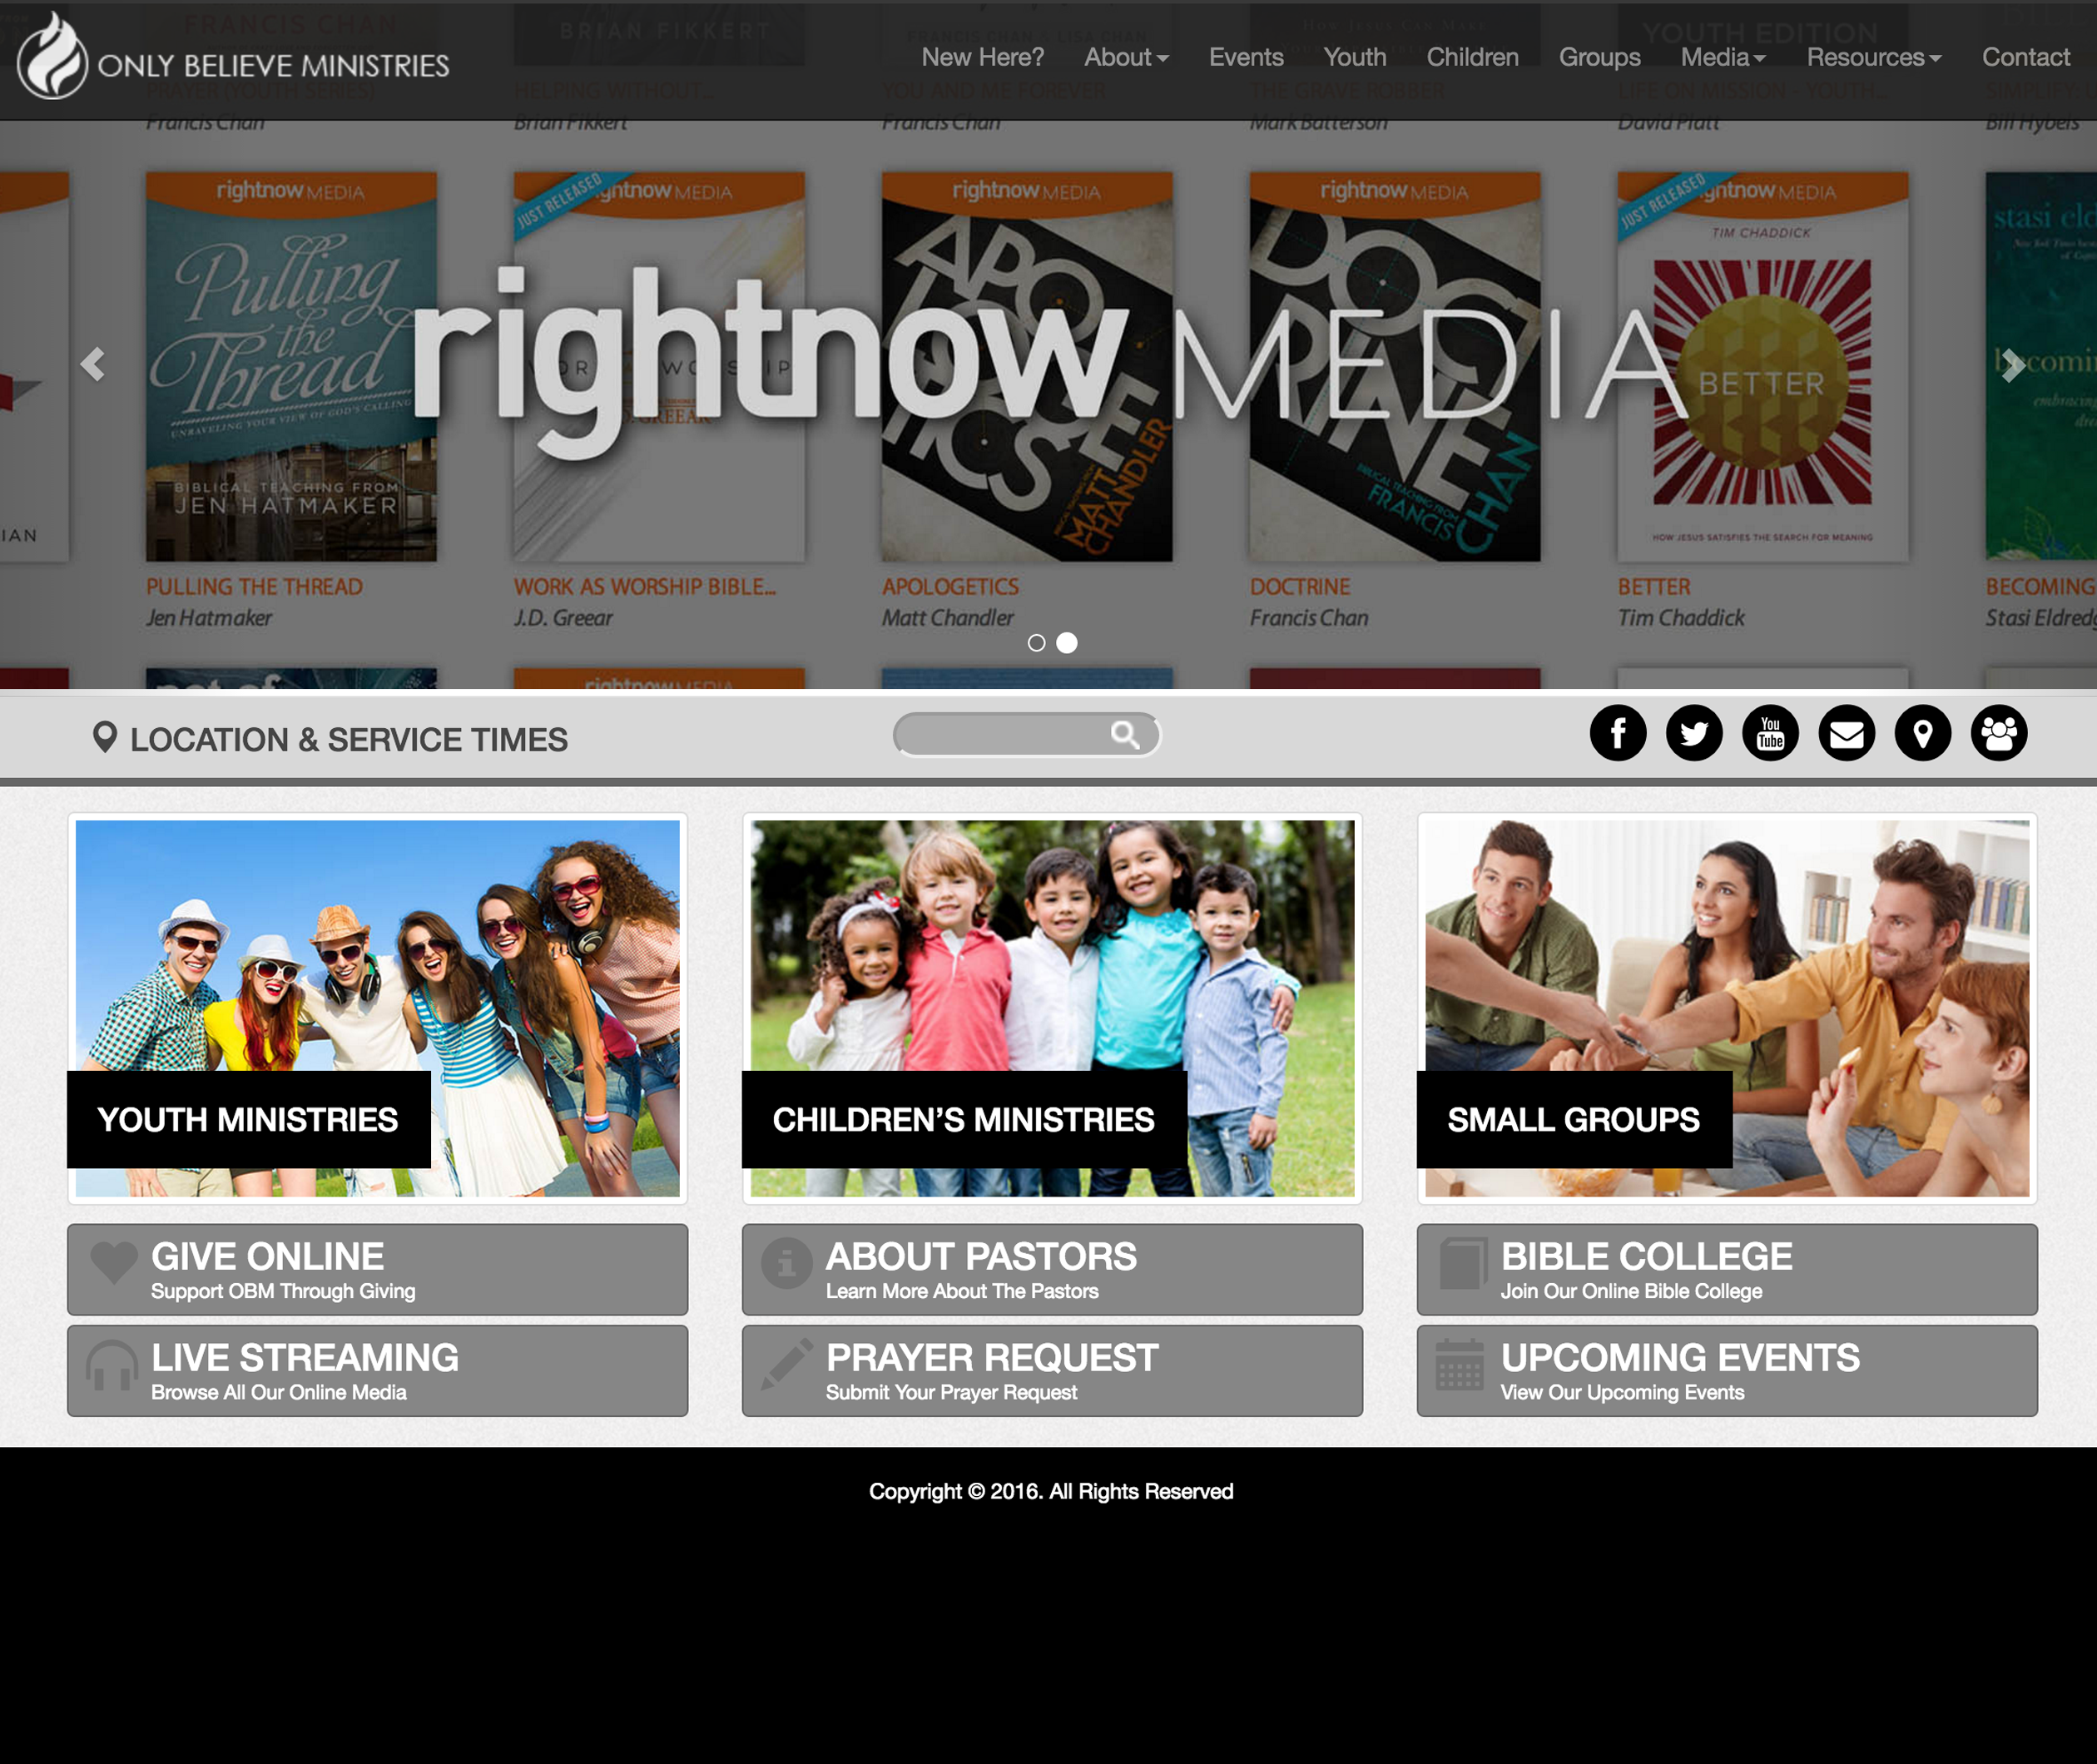 Only believe Ministries Website